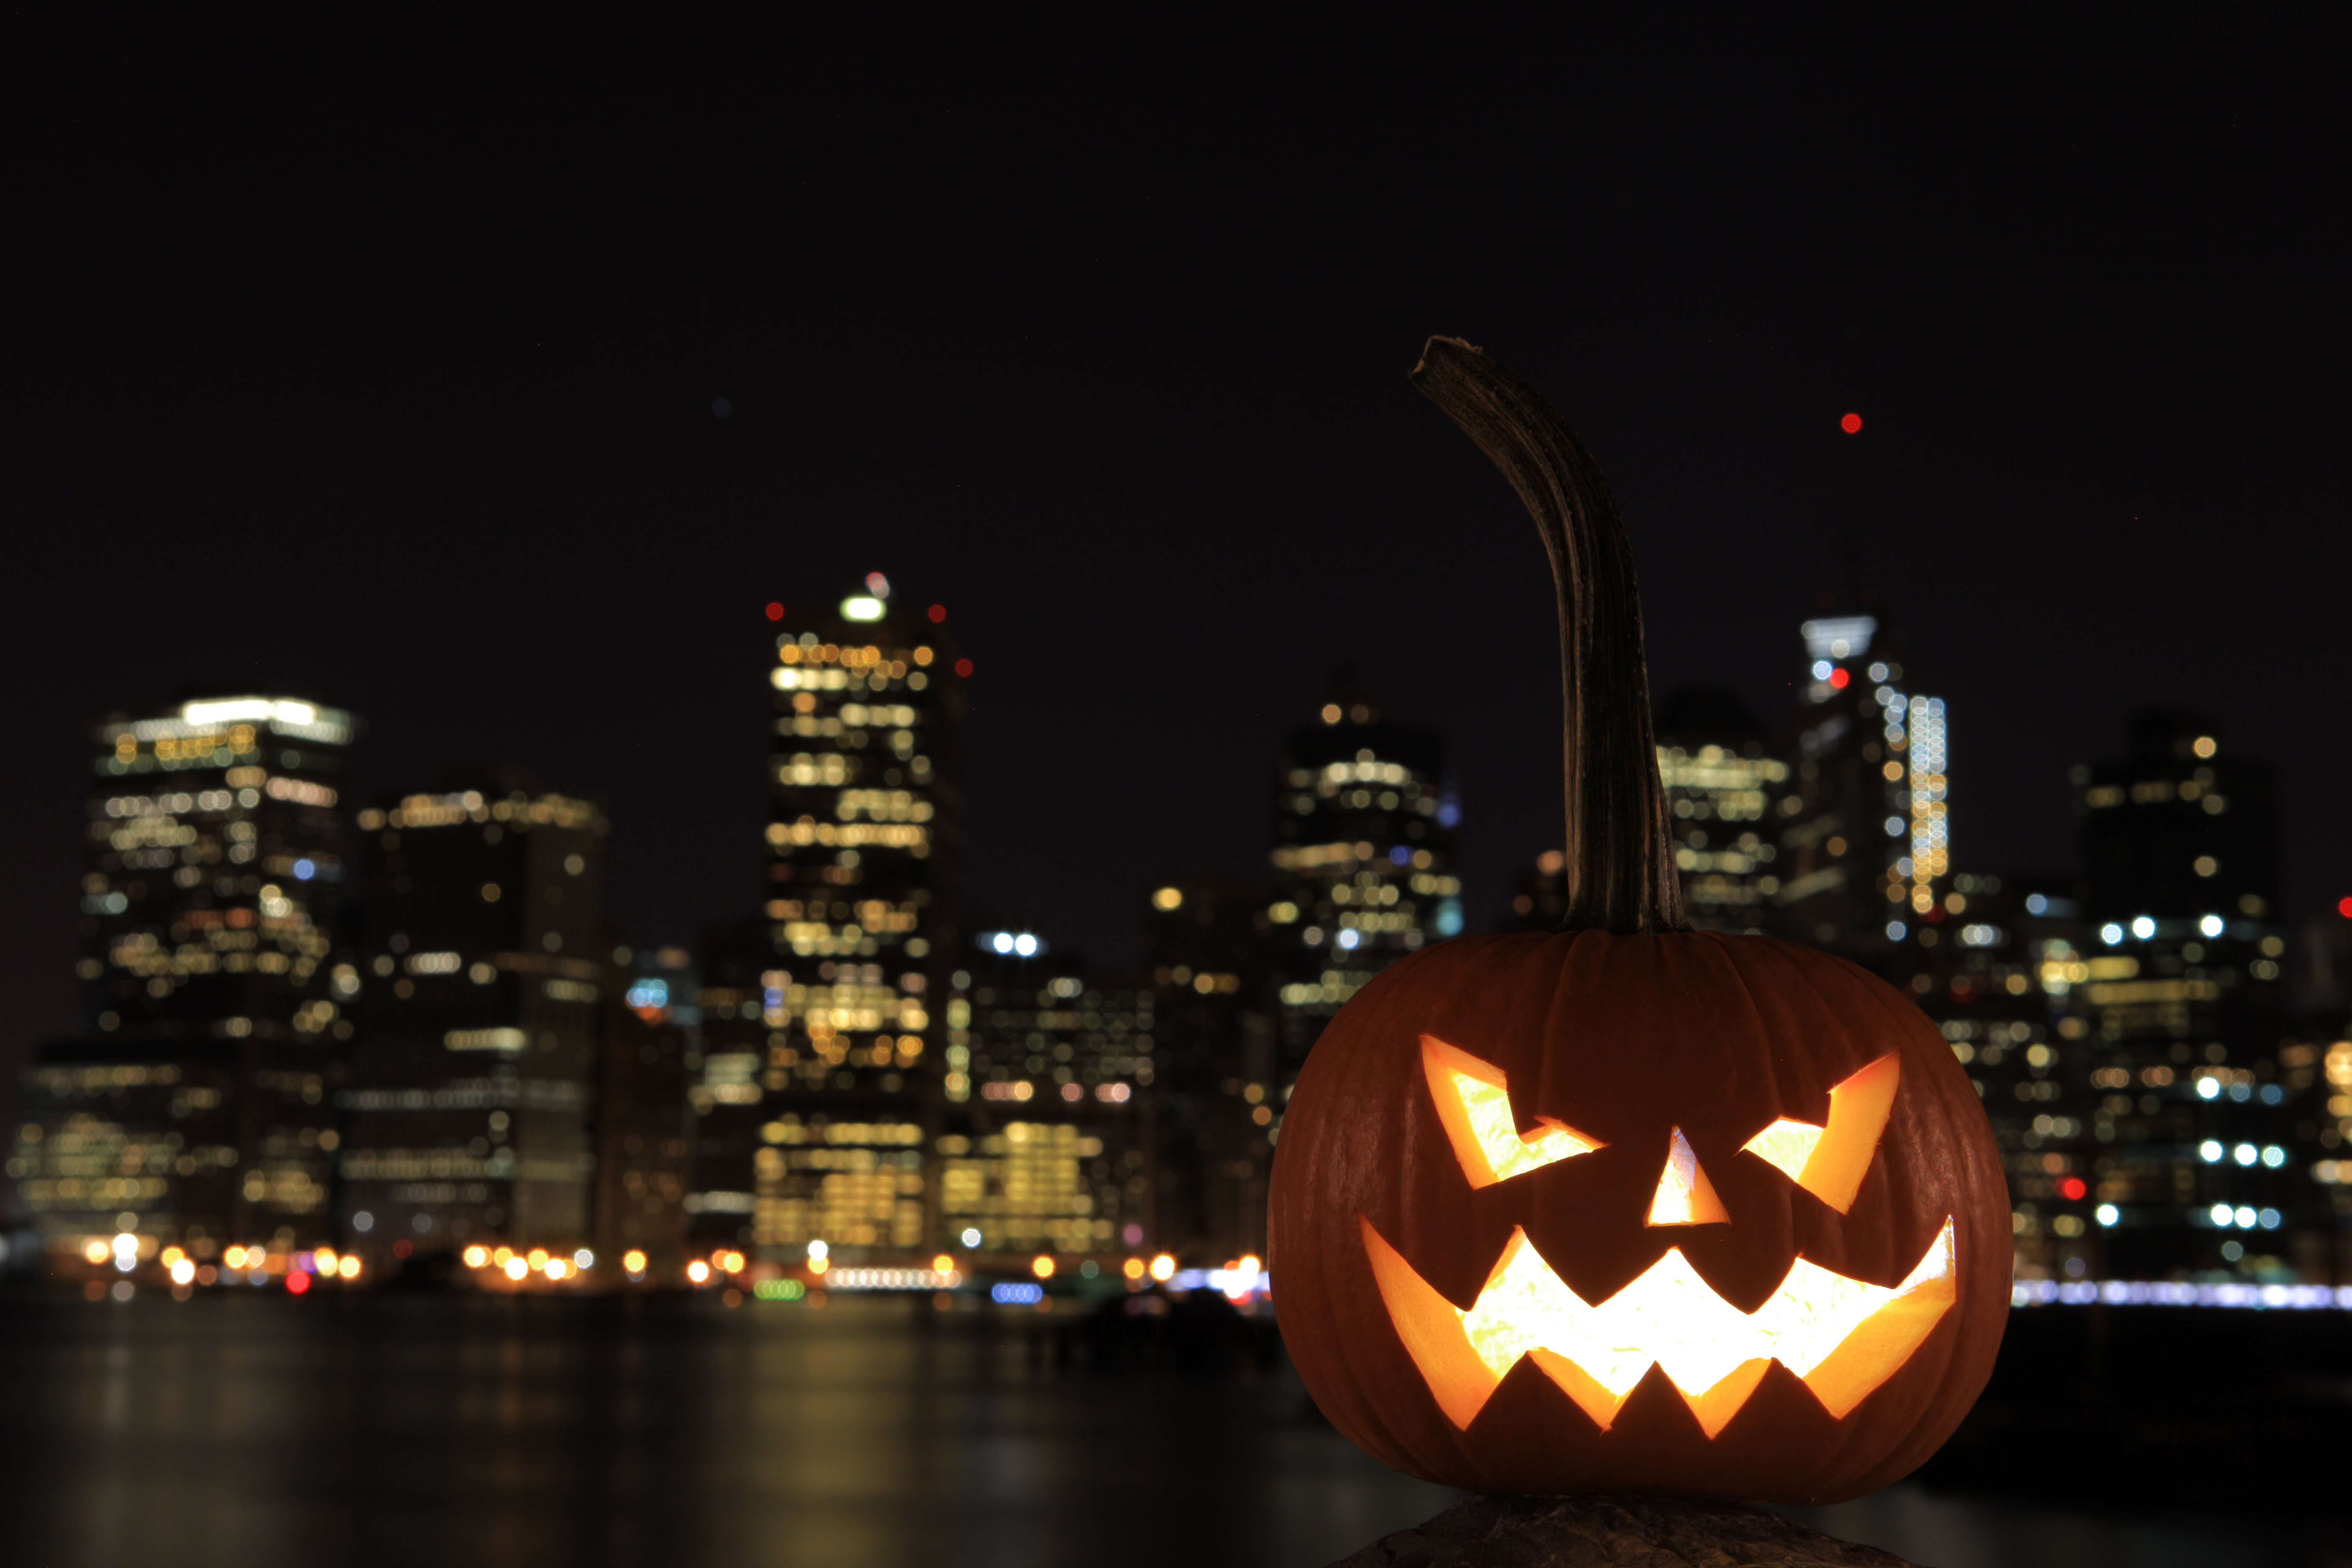 New York City Night Skline in the bacground of a Halloween Pumpkin